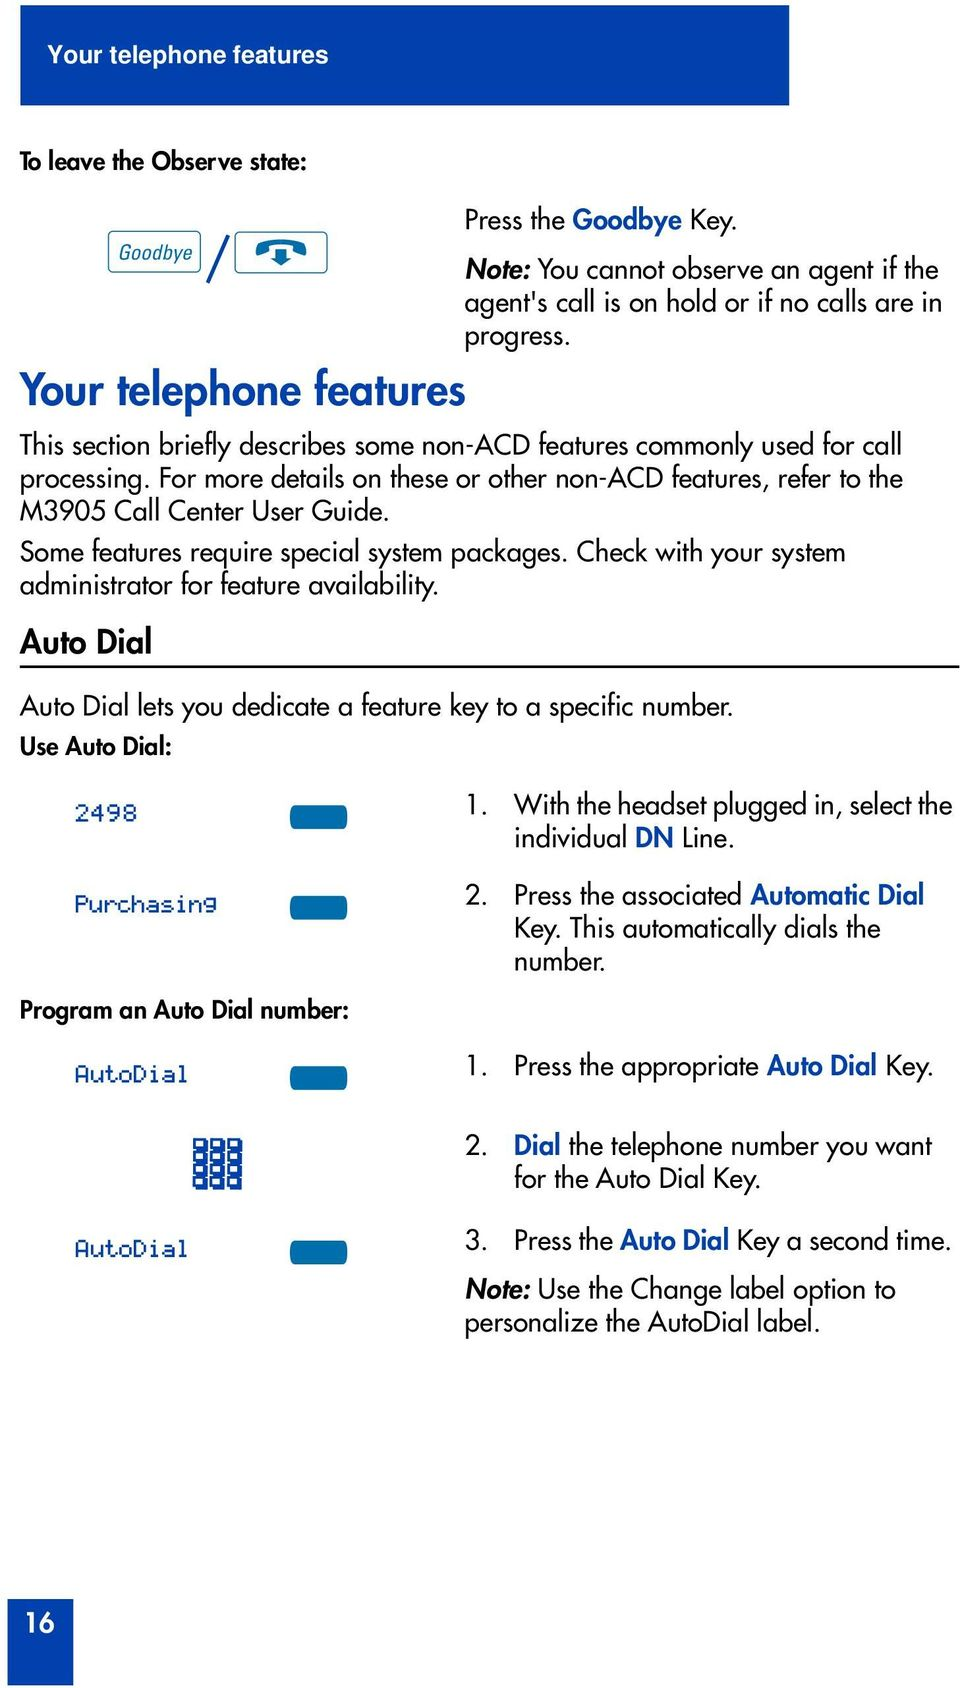 Some features require special system packages. Check with your system administrator for feature availability. Auto Dial Goodbye Auto Dial lets you dedicate a feature key to a specific number.